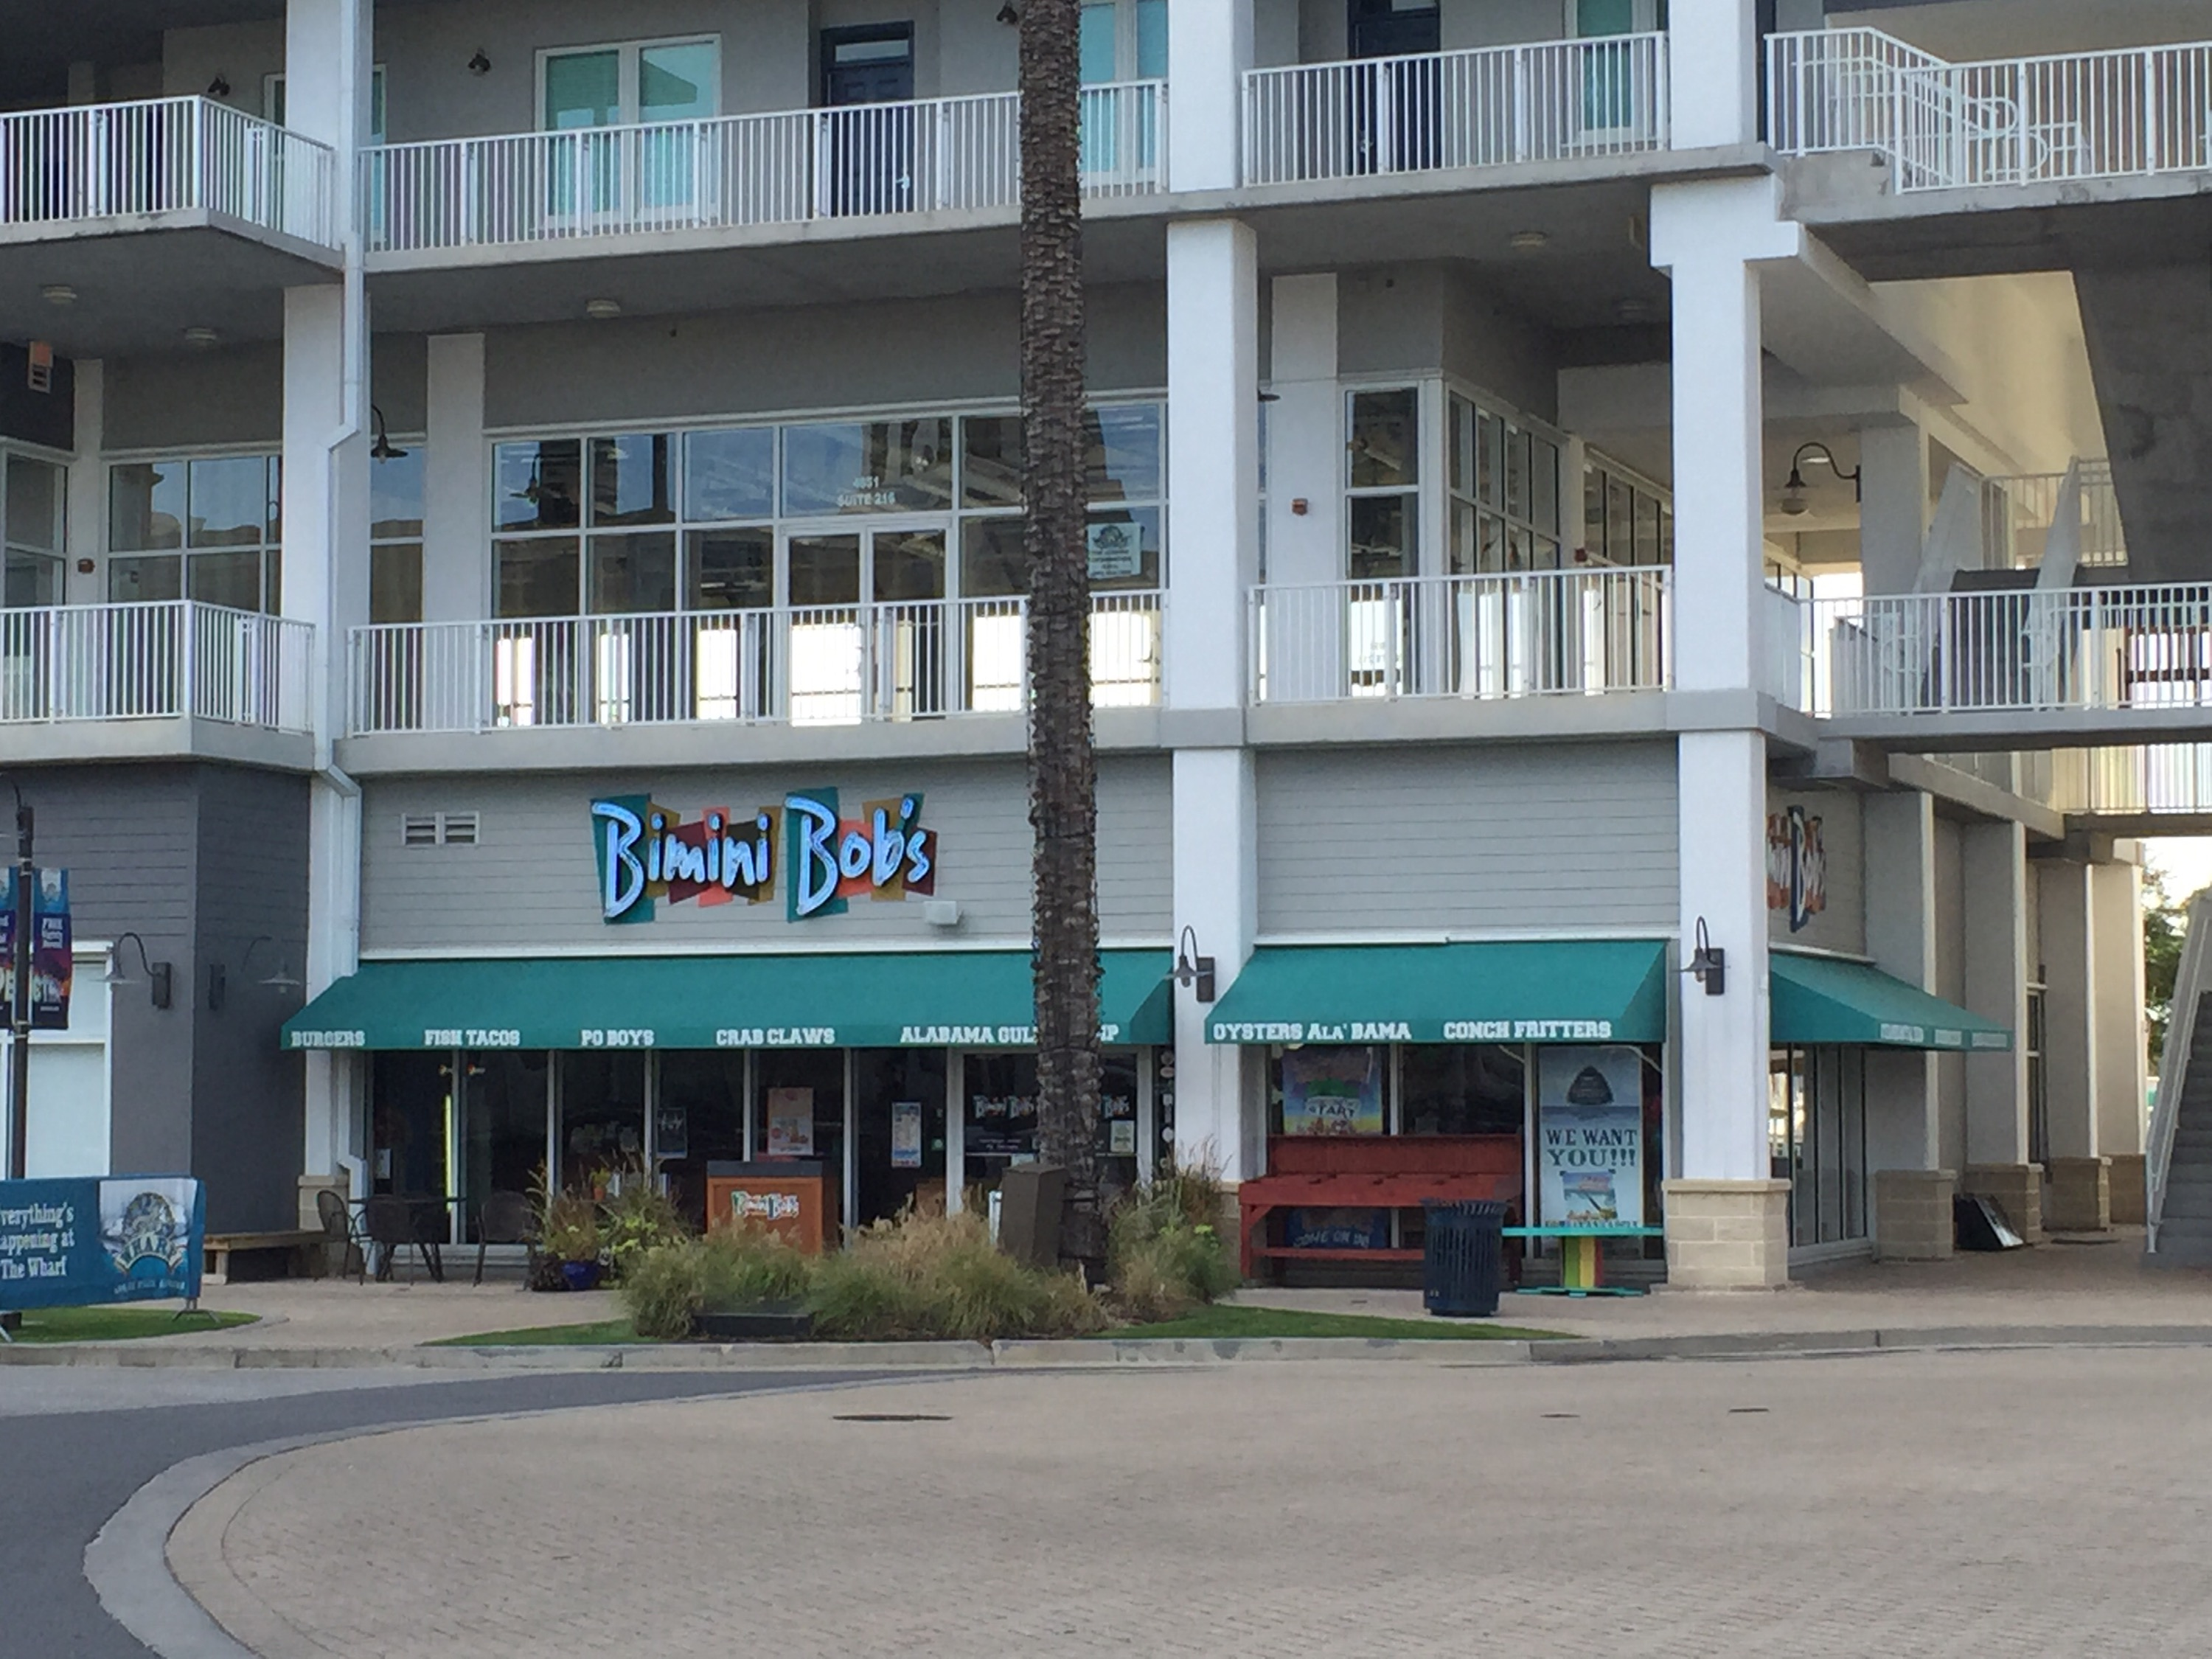 Bimini Bob's at Gulf Shores and Orange Beach Alabama